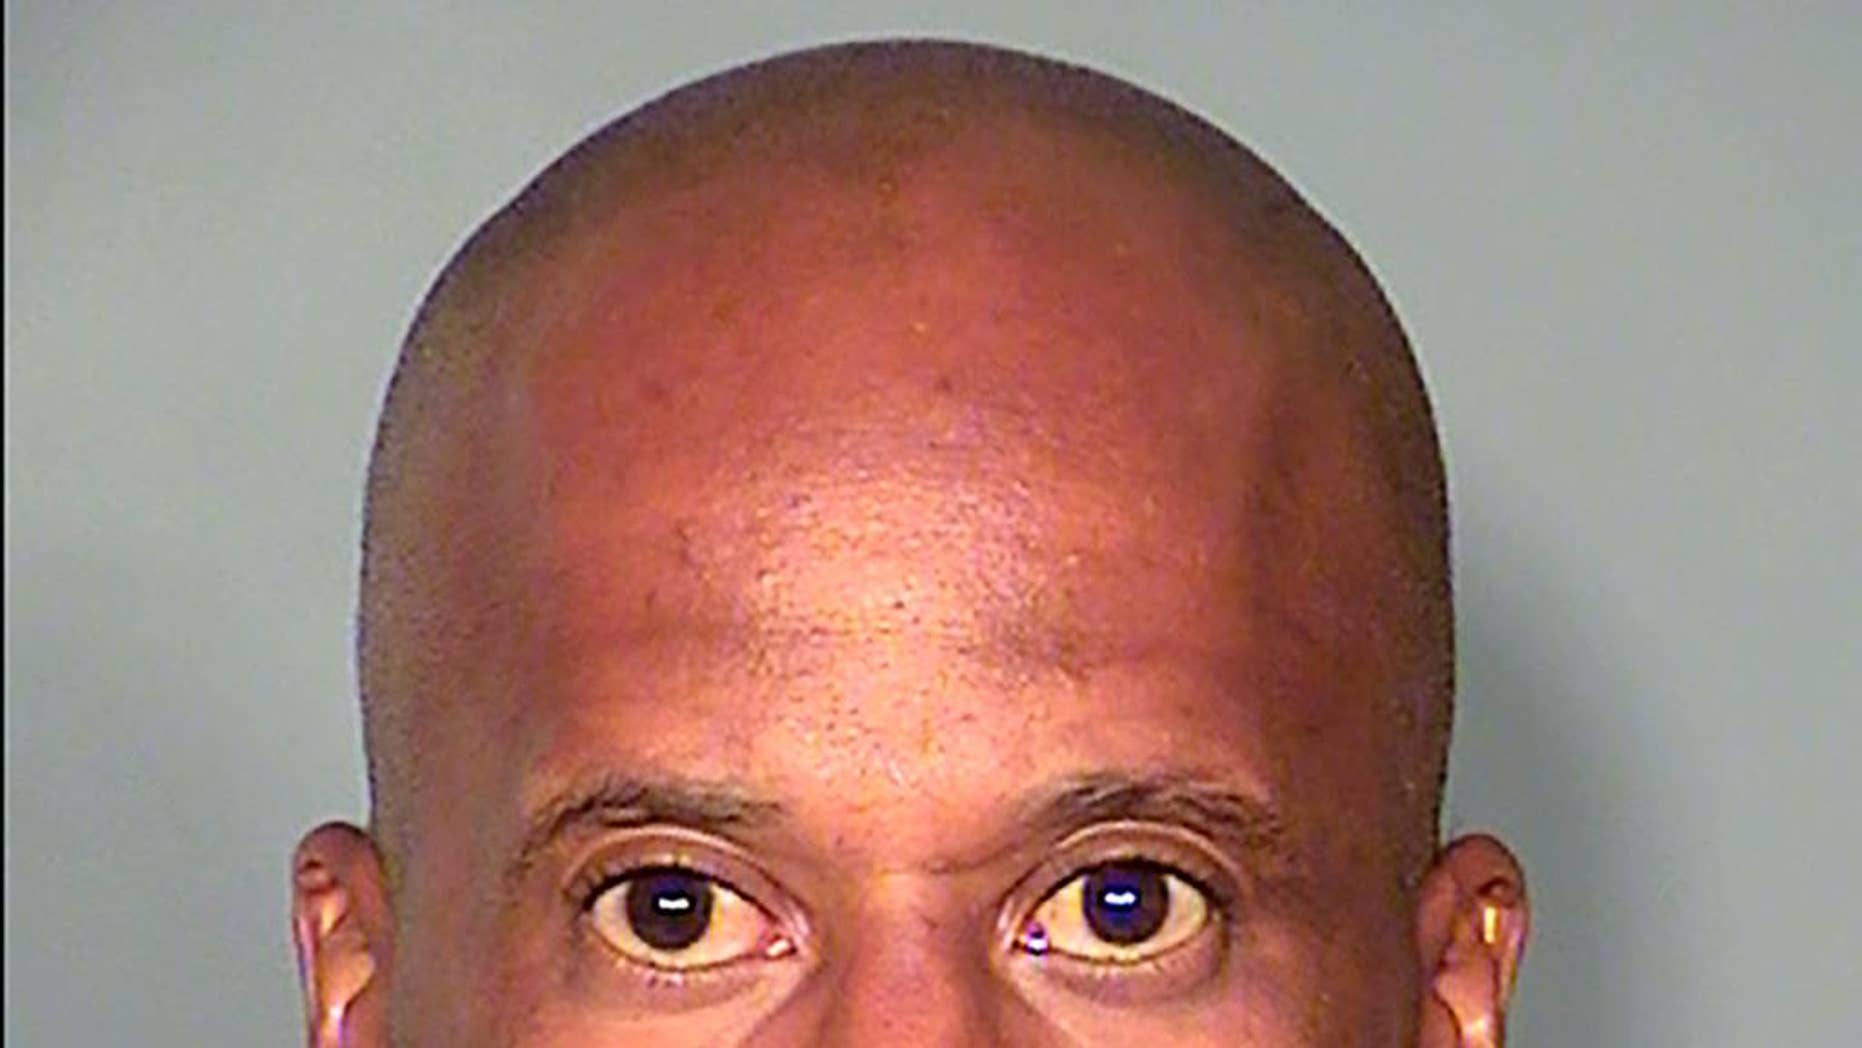 This Thursday, Aug. 6, 2015 booking photo released by the Las Vegas Metropolitan Police Department, shows suspect Leonard Ray Woods, 46 at the Clark County Detention Center North in Las Vegas.  Police say security video shows Woods stalking and fatally stabbing his estranged girlfriend outside a Las Vegas pharmacy hours before he turned himself in. (Las Vegas Metropolitan Police Department  via AP)